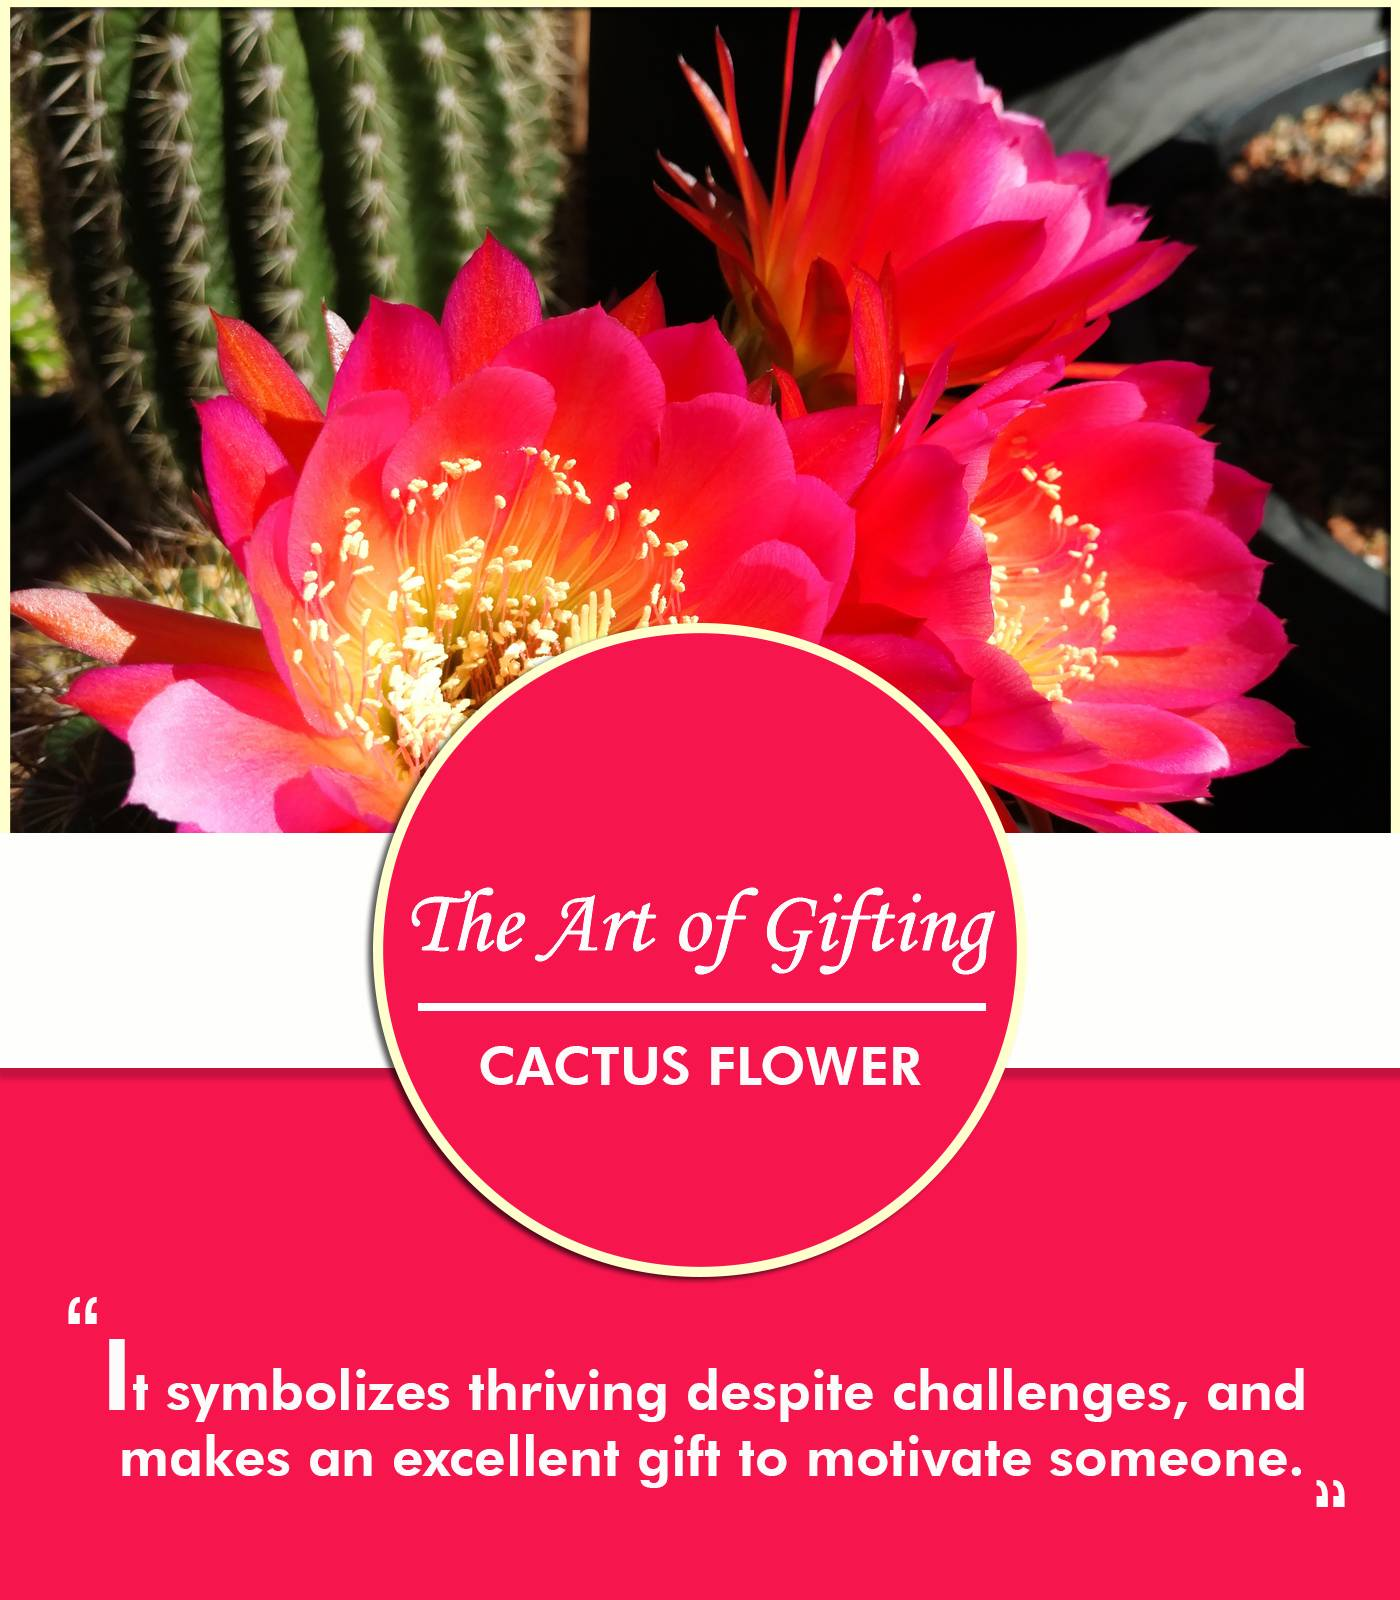 Symbolic Meanings of Flowers in the Art of Gifting